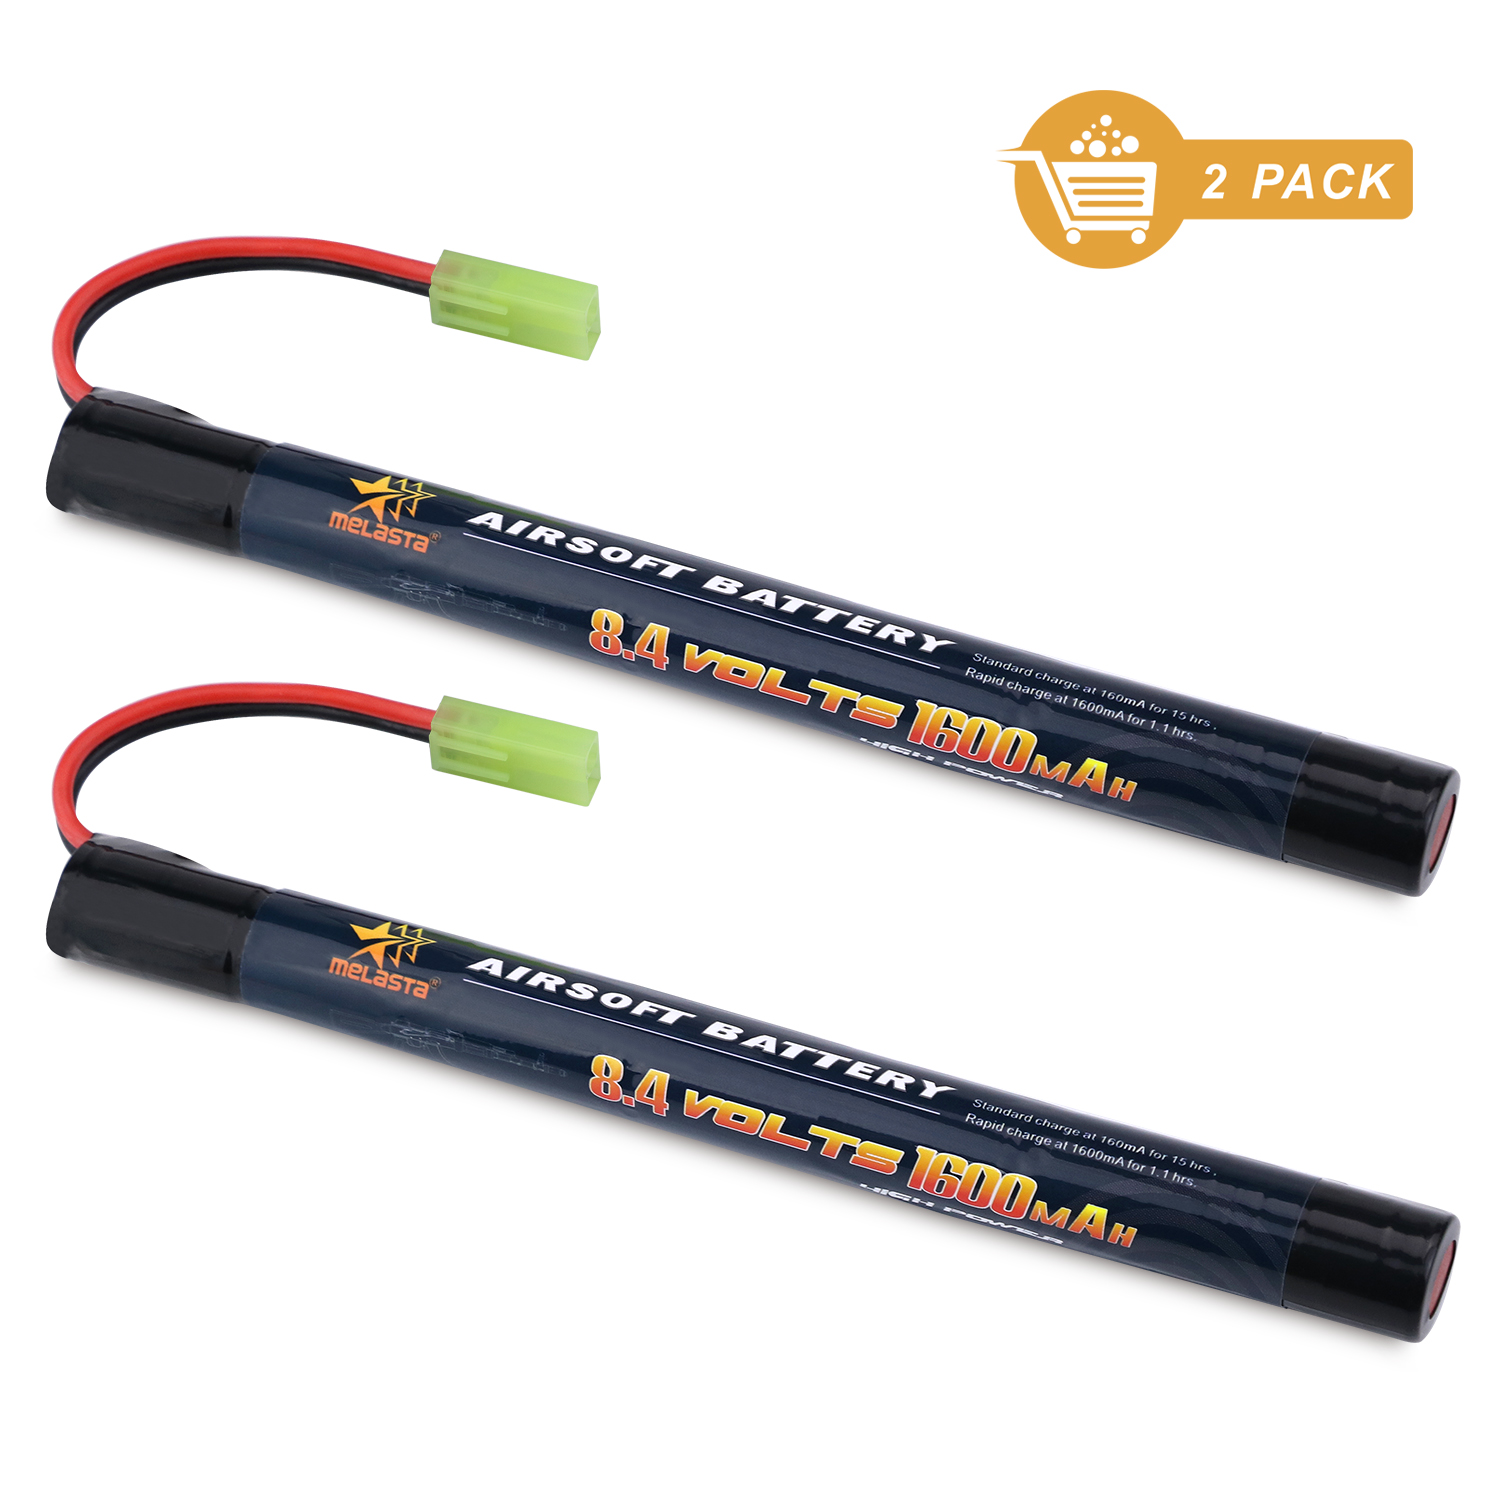 2PCS 7S 2/3A 8.4v 1600mAh Stick NIMH Airsoft Guns Battery Pack with Mini Tamiya Connector for Airsoft Mini AK series image